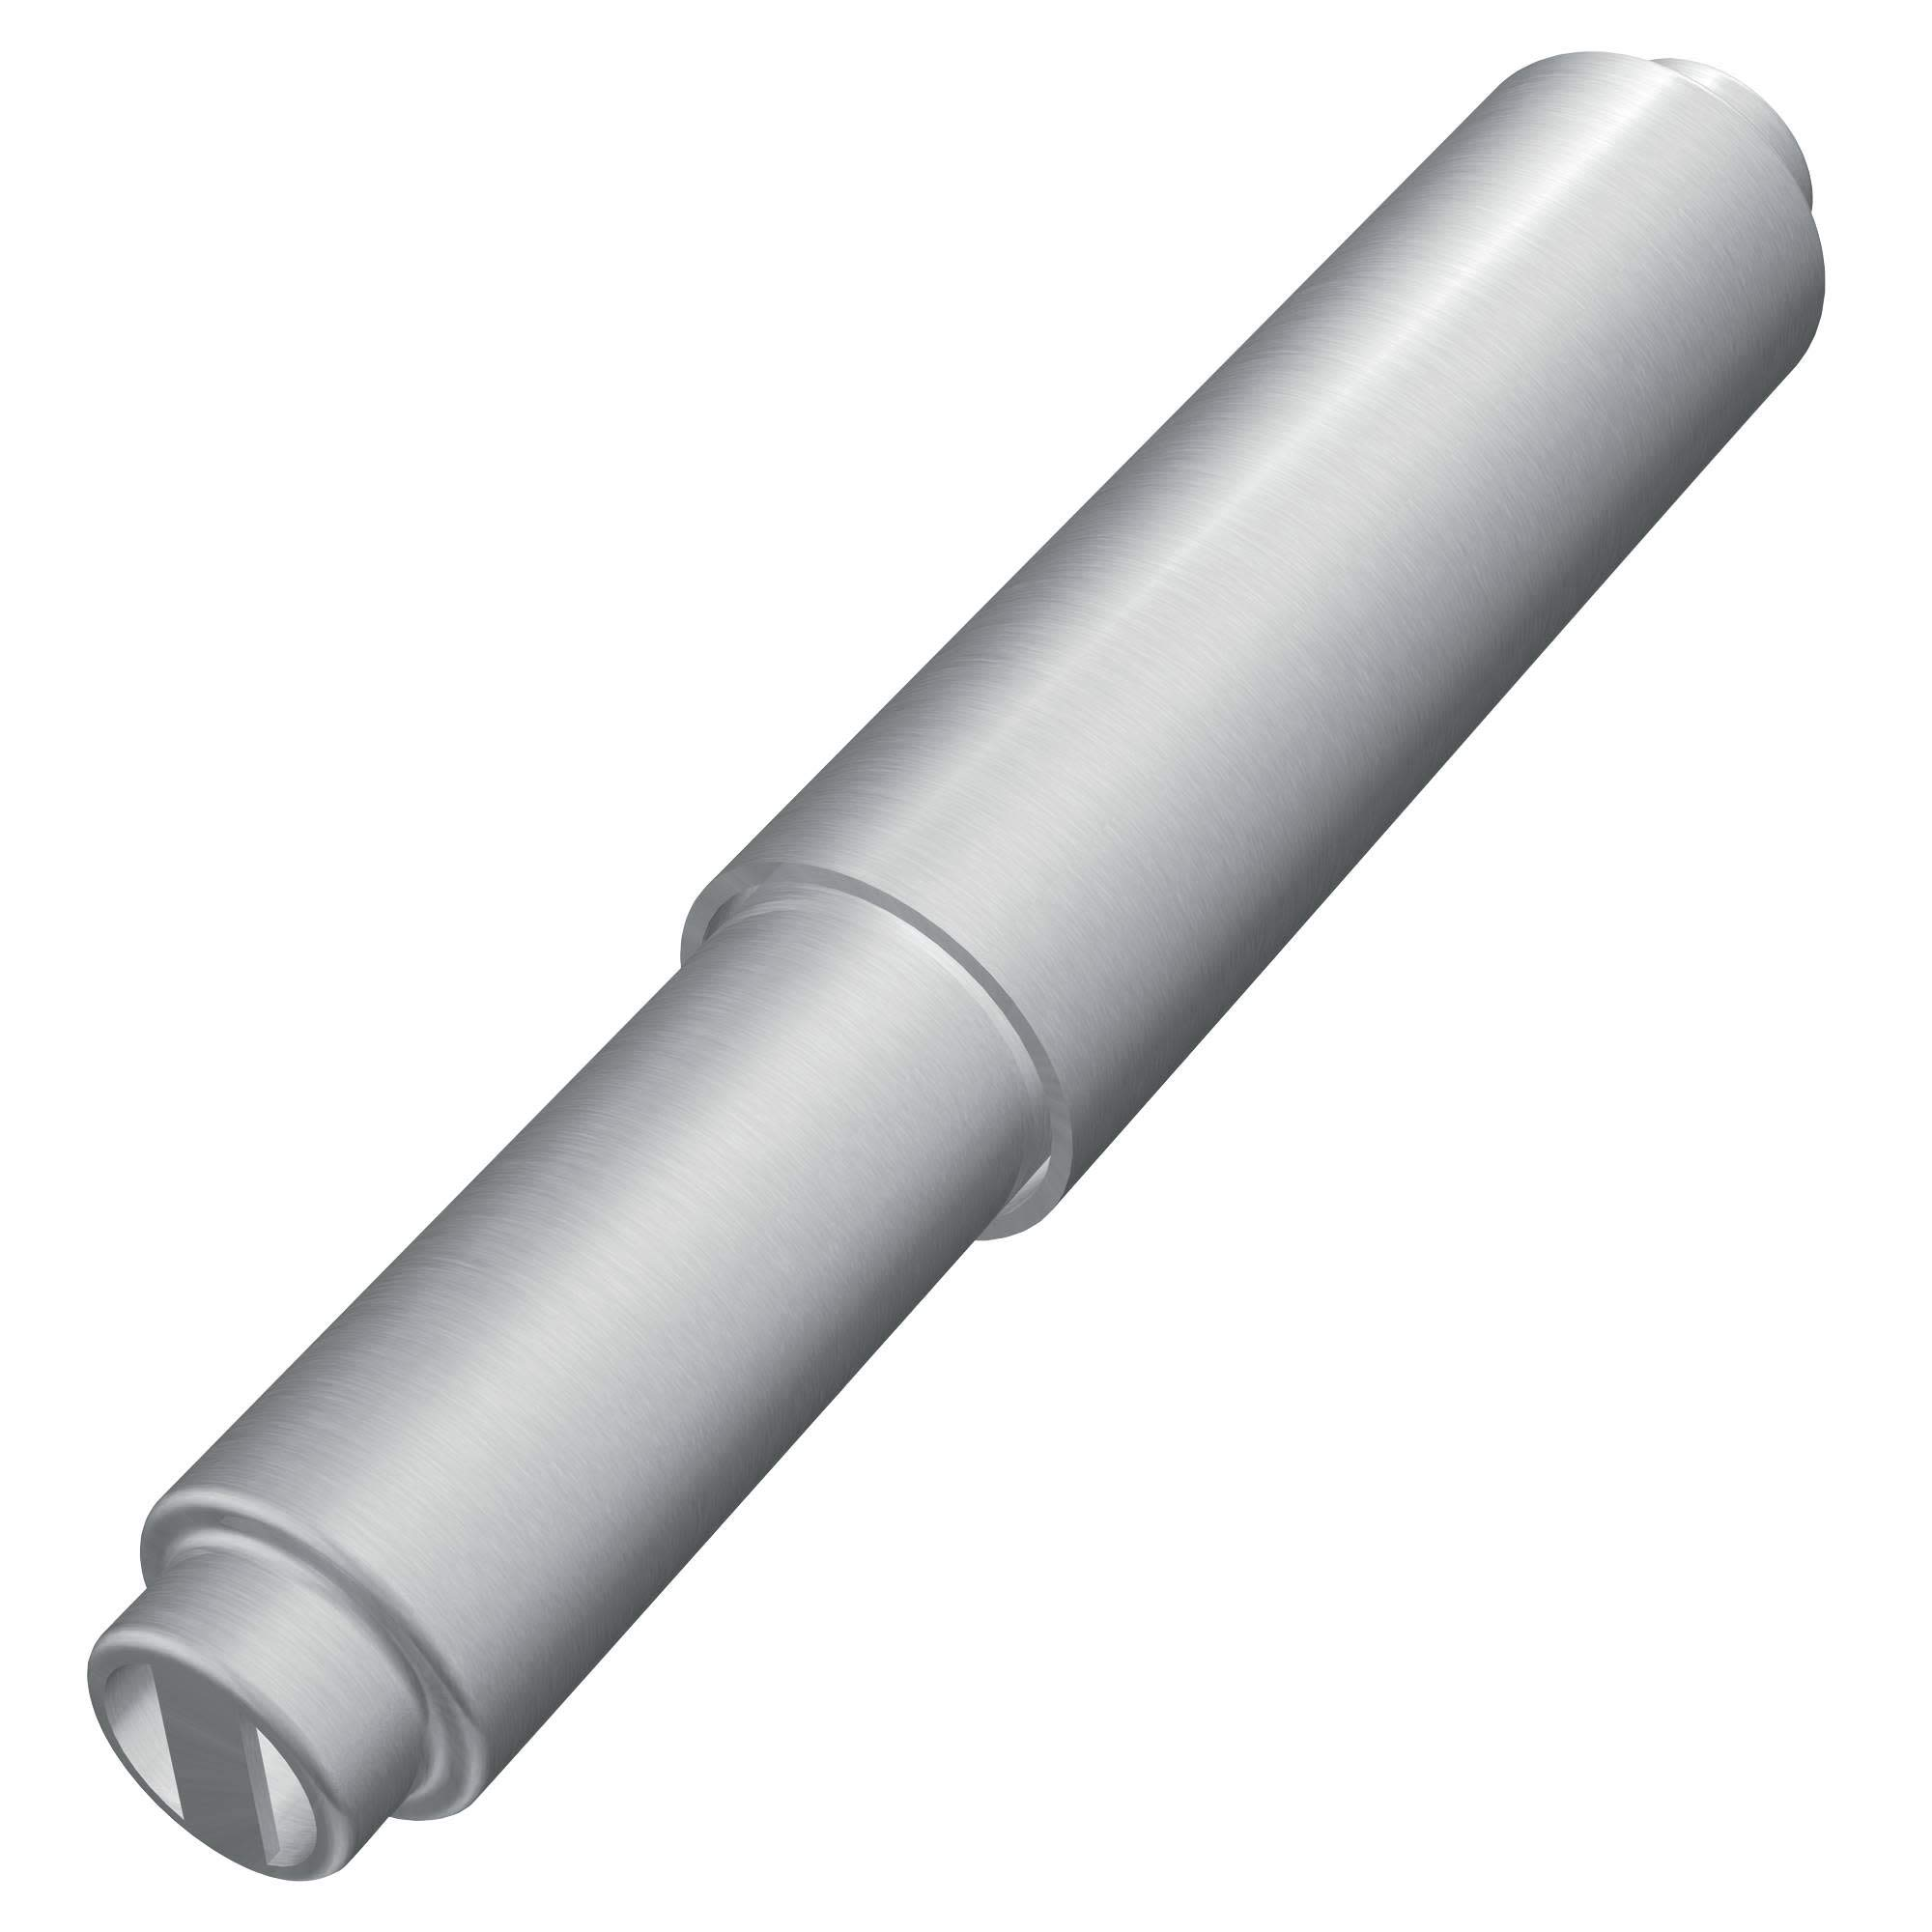 Moen YB8099BC Mason Replacement Toilet Paper Roller, Brushed Chrome